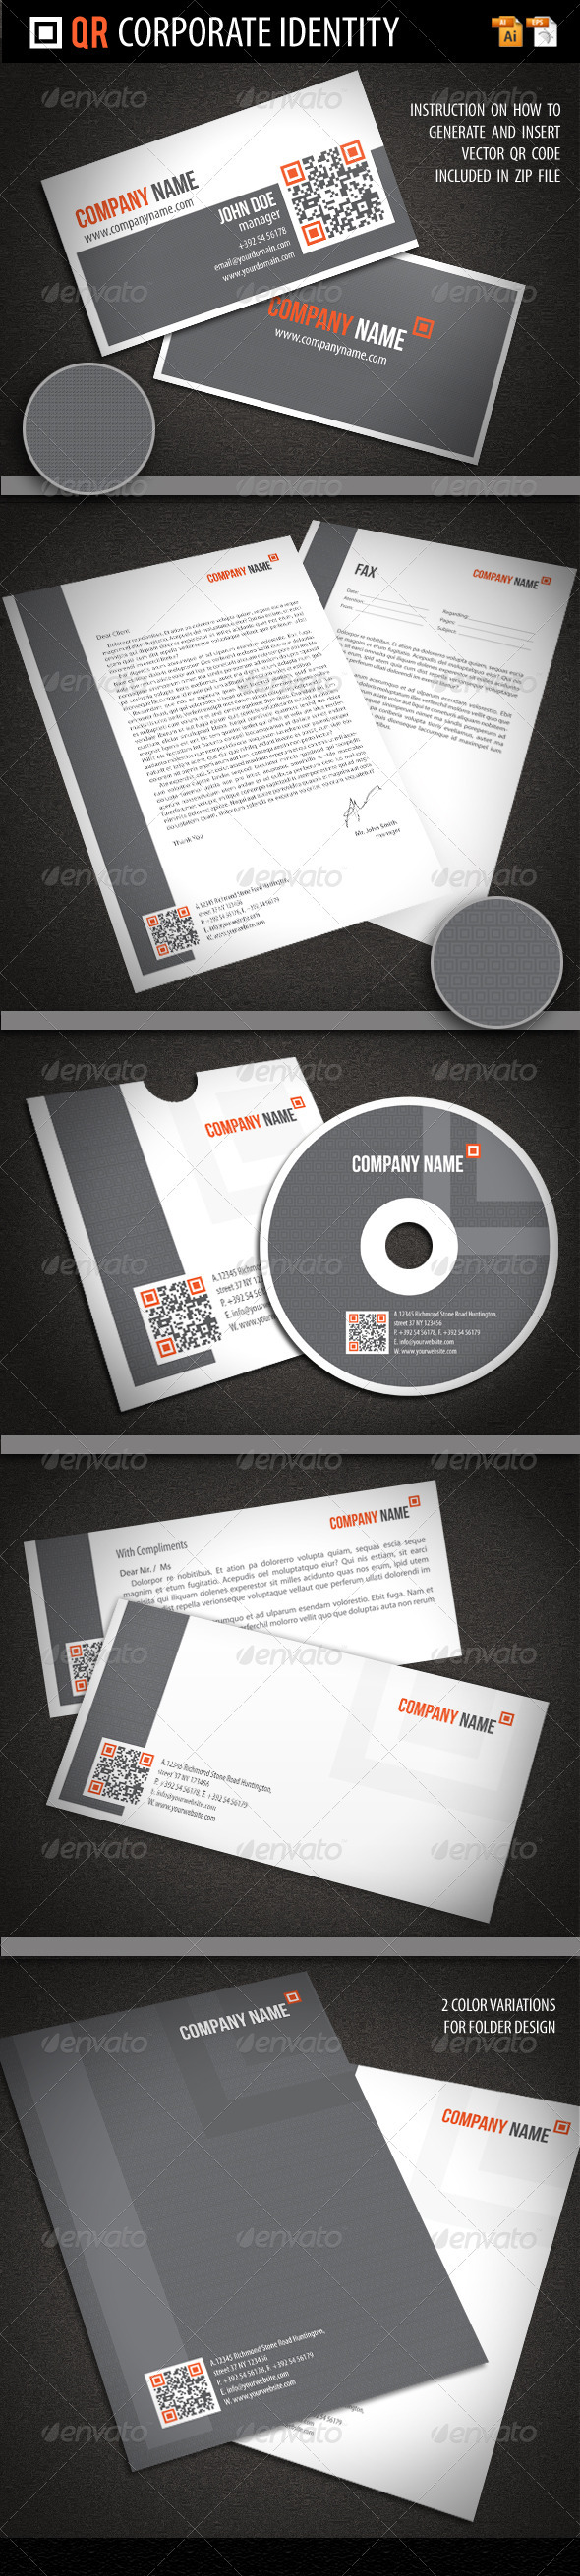 GraphicRiver QR Corporate Identity 1567501